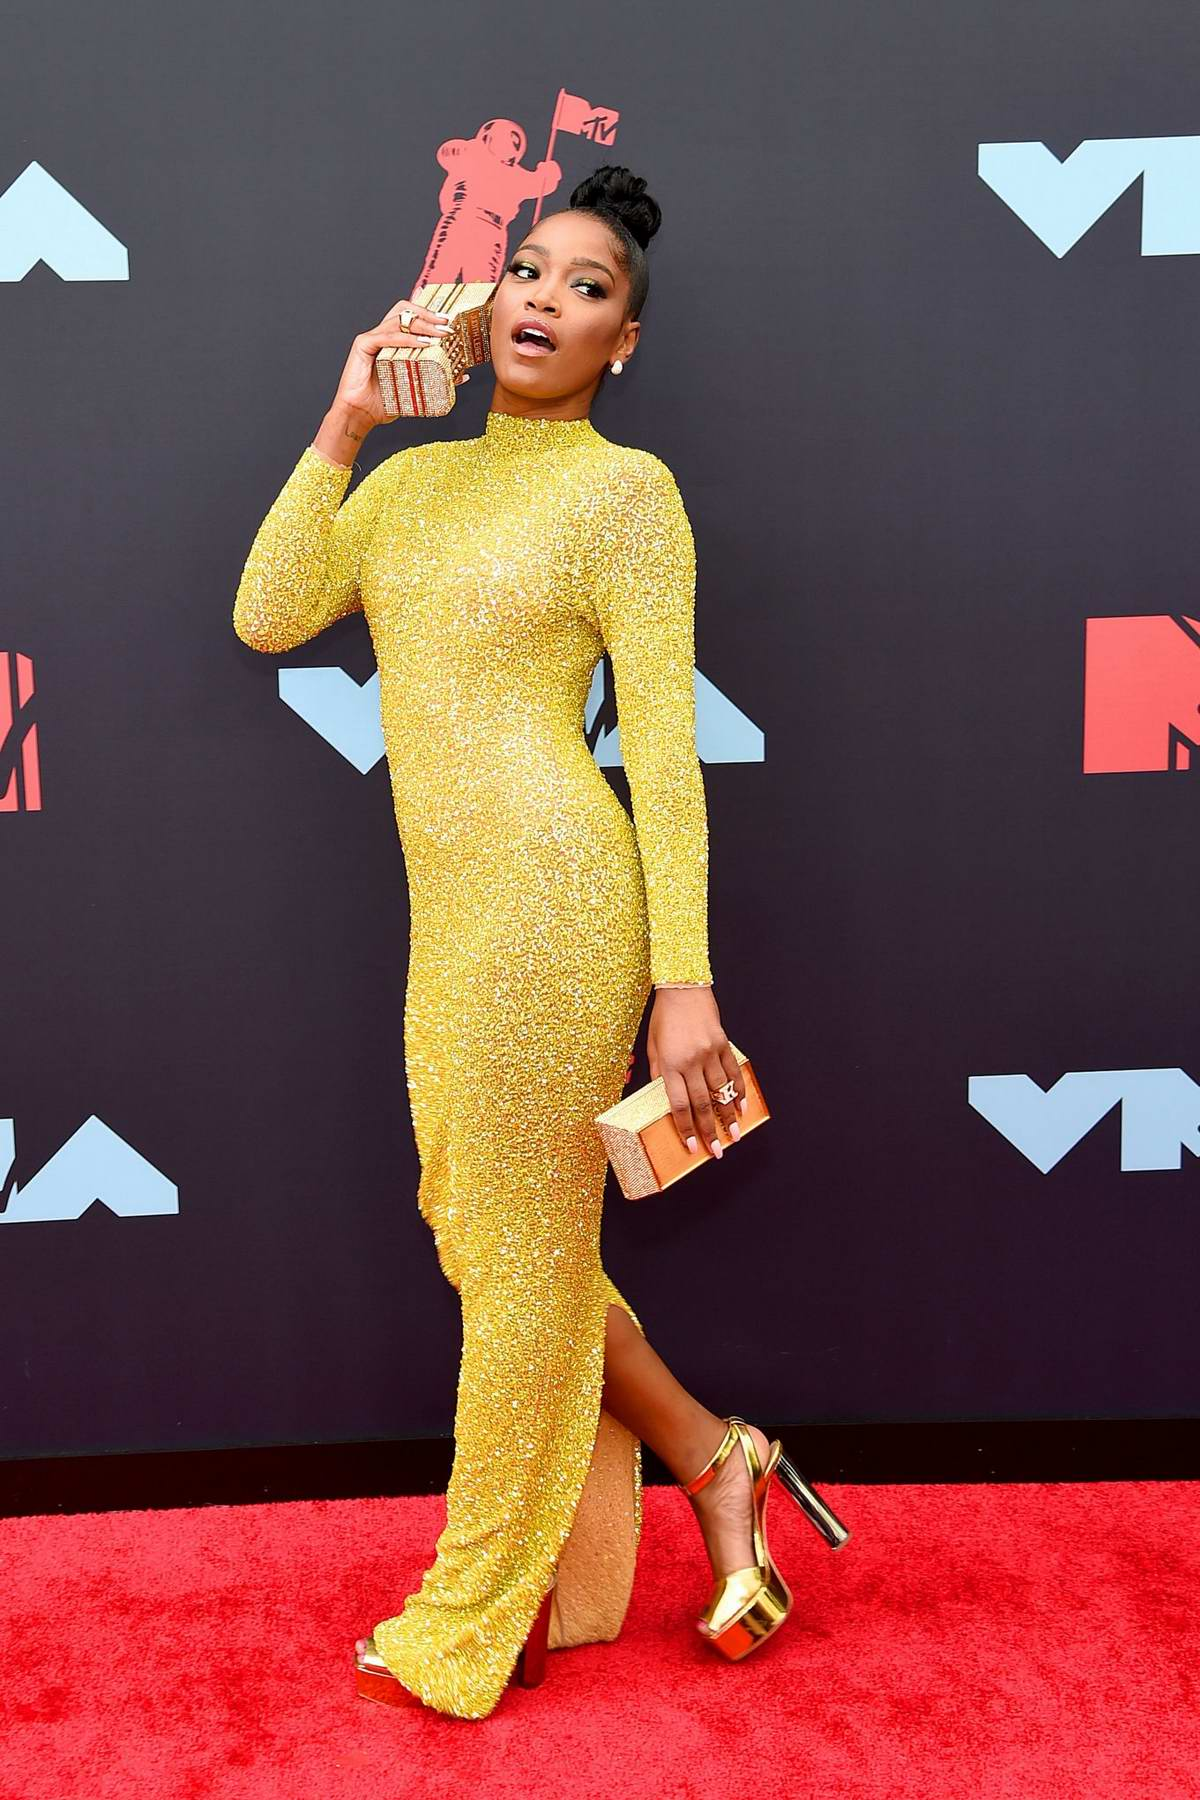 Keke Palmer attends the 2019 MTV Video Music Awards at Prudential Center in Newark, New Jersey